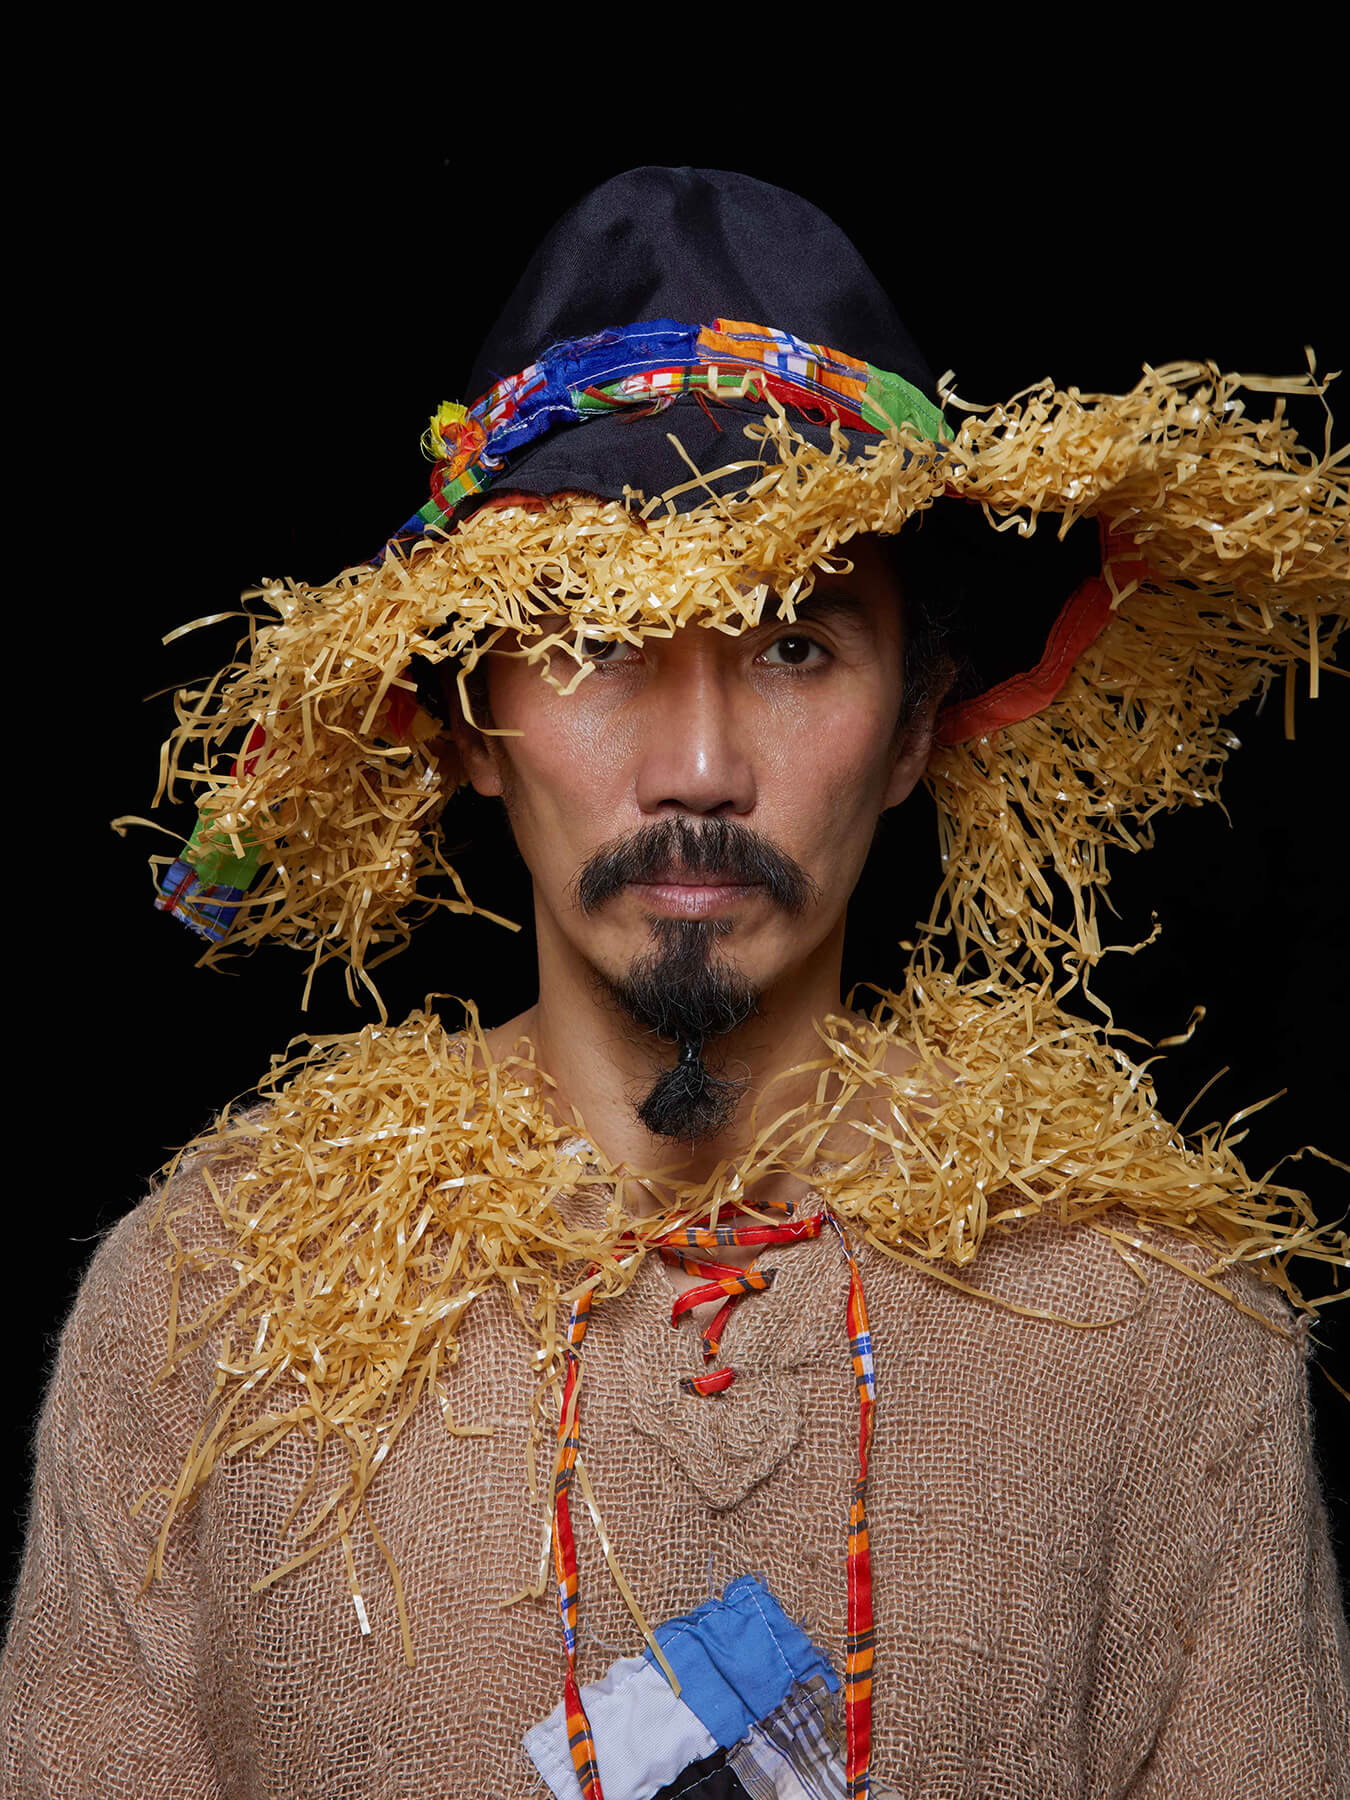 18 Jan 2018 Derong is styled as scarecrow from the wizard of oz